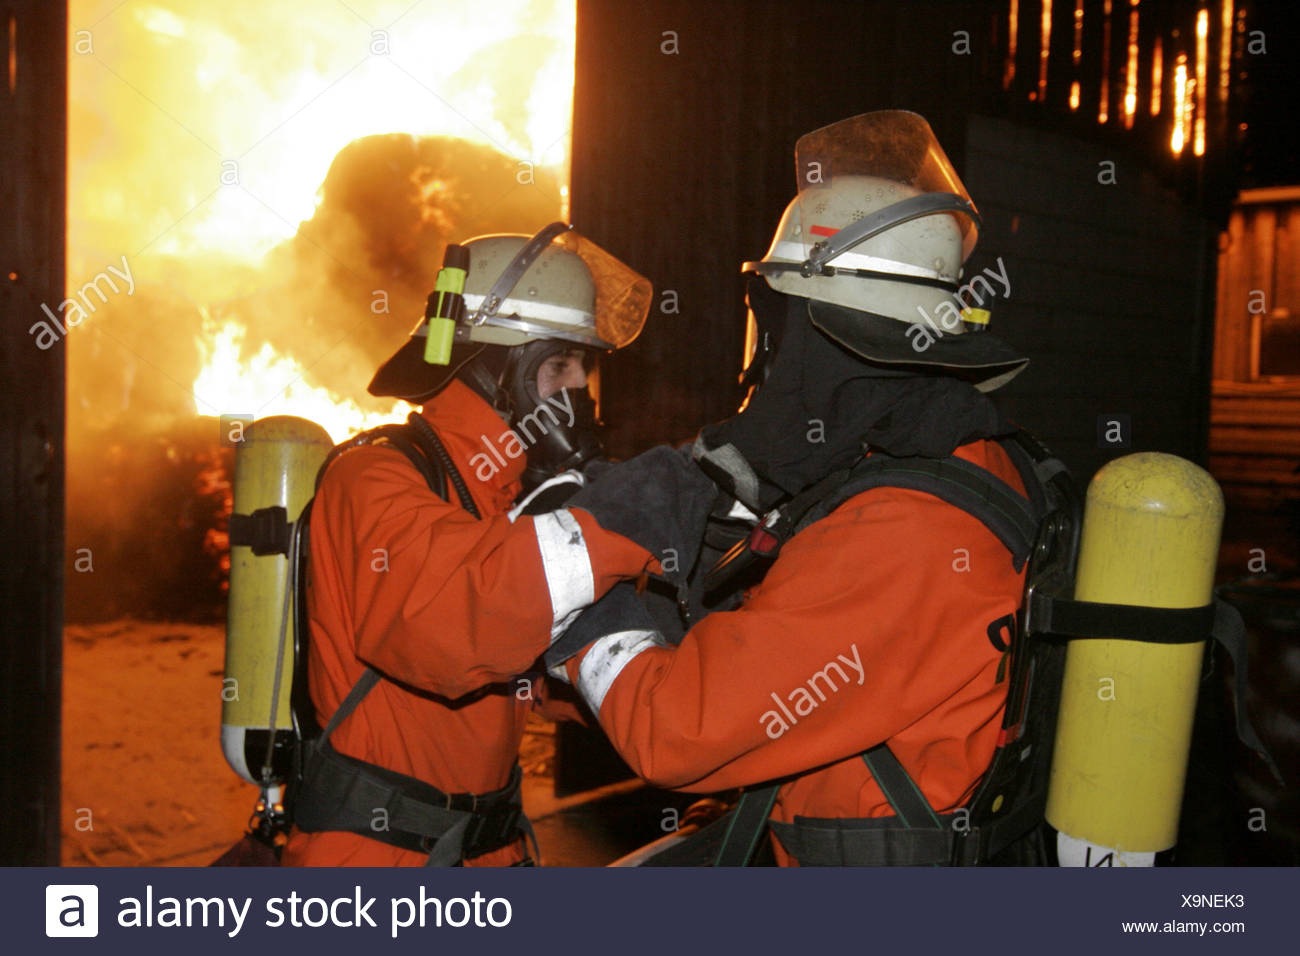 Conflagration fire brigade fighting conflagration fire Großsachsen Germany - Stock Image